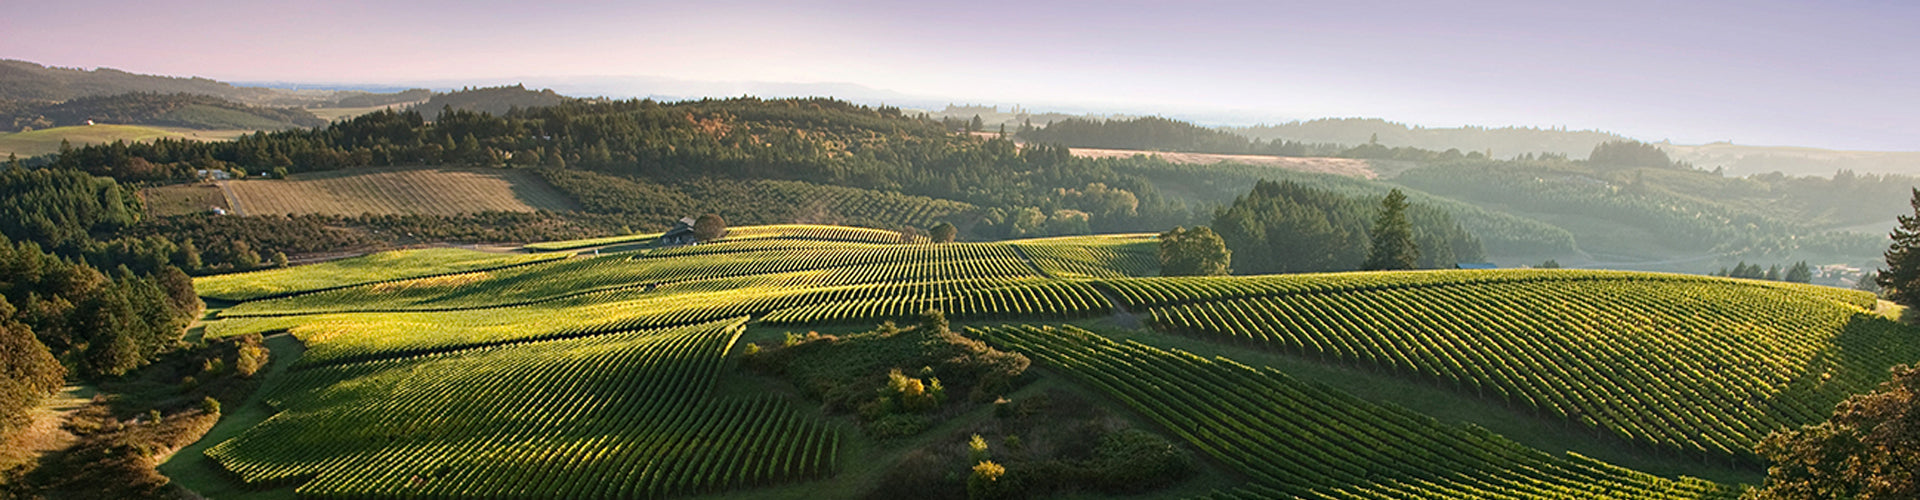 Shea Vineyards in Oregon, Pacific Northwest of America